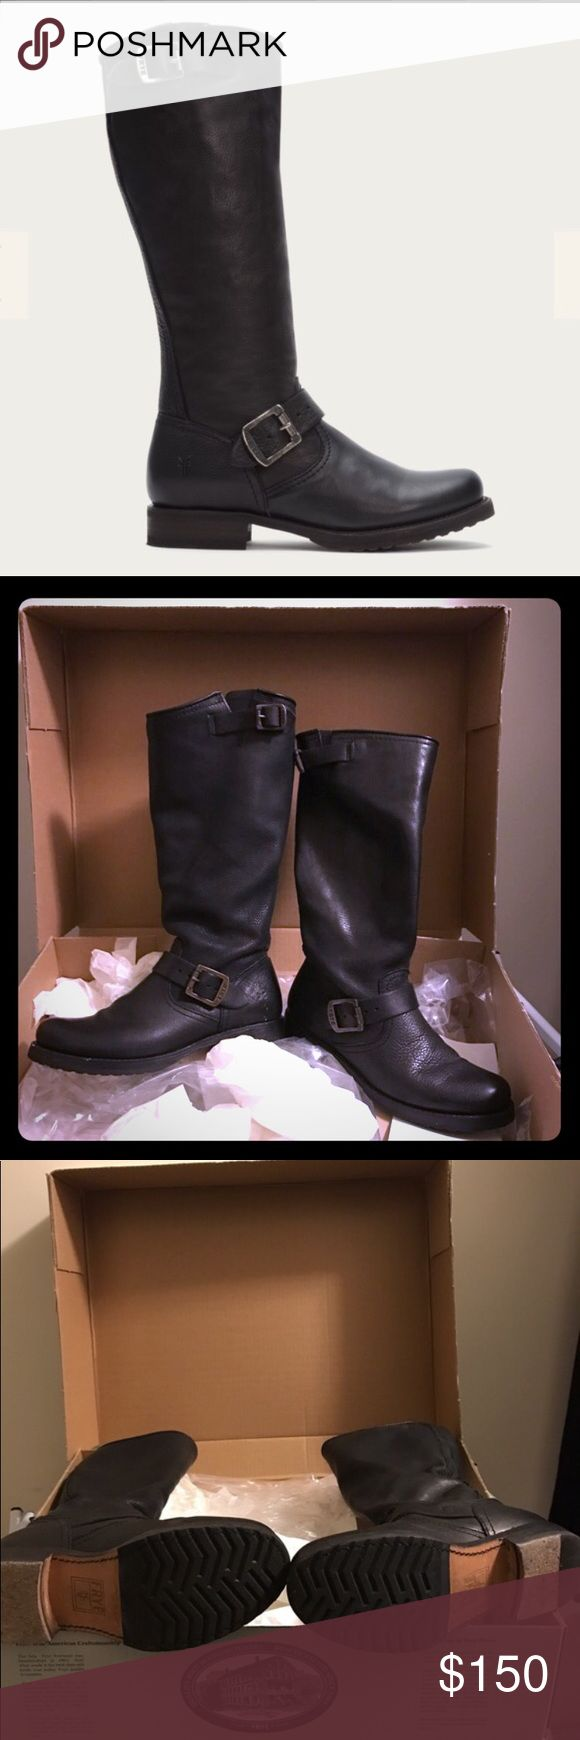 """Frye Tall Veronica Slouch Boot, Size 7 Frye Veronica Slouch Boot  Black leather  Size 7 - fits true to size.  Frye boots last forever and only get better with age. A tough engineer boot with a soft, relaxed fit, crafted from soft vintage leather.   -Italian Leather  -Leather Lined  -Leather Outsole  The only reason I'm selling is because my feet grew with pregnancy. Don't miss out!  15"""" calf circumference. Frye Shoes Combat & Moto Boots"""